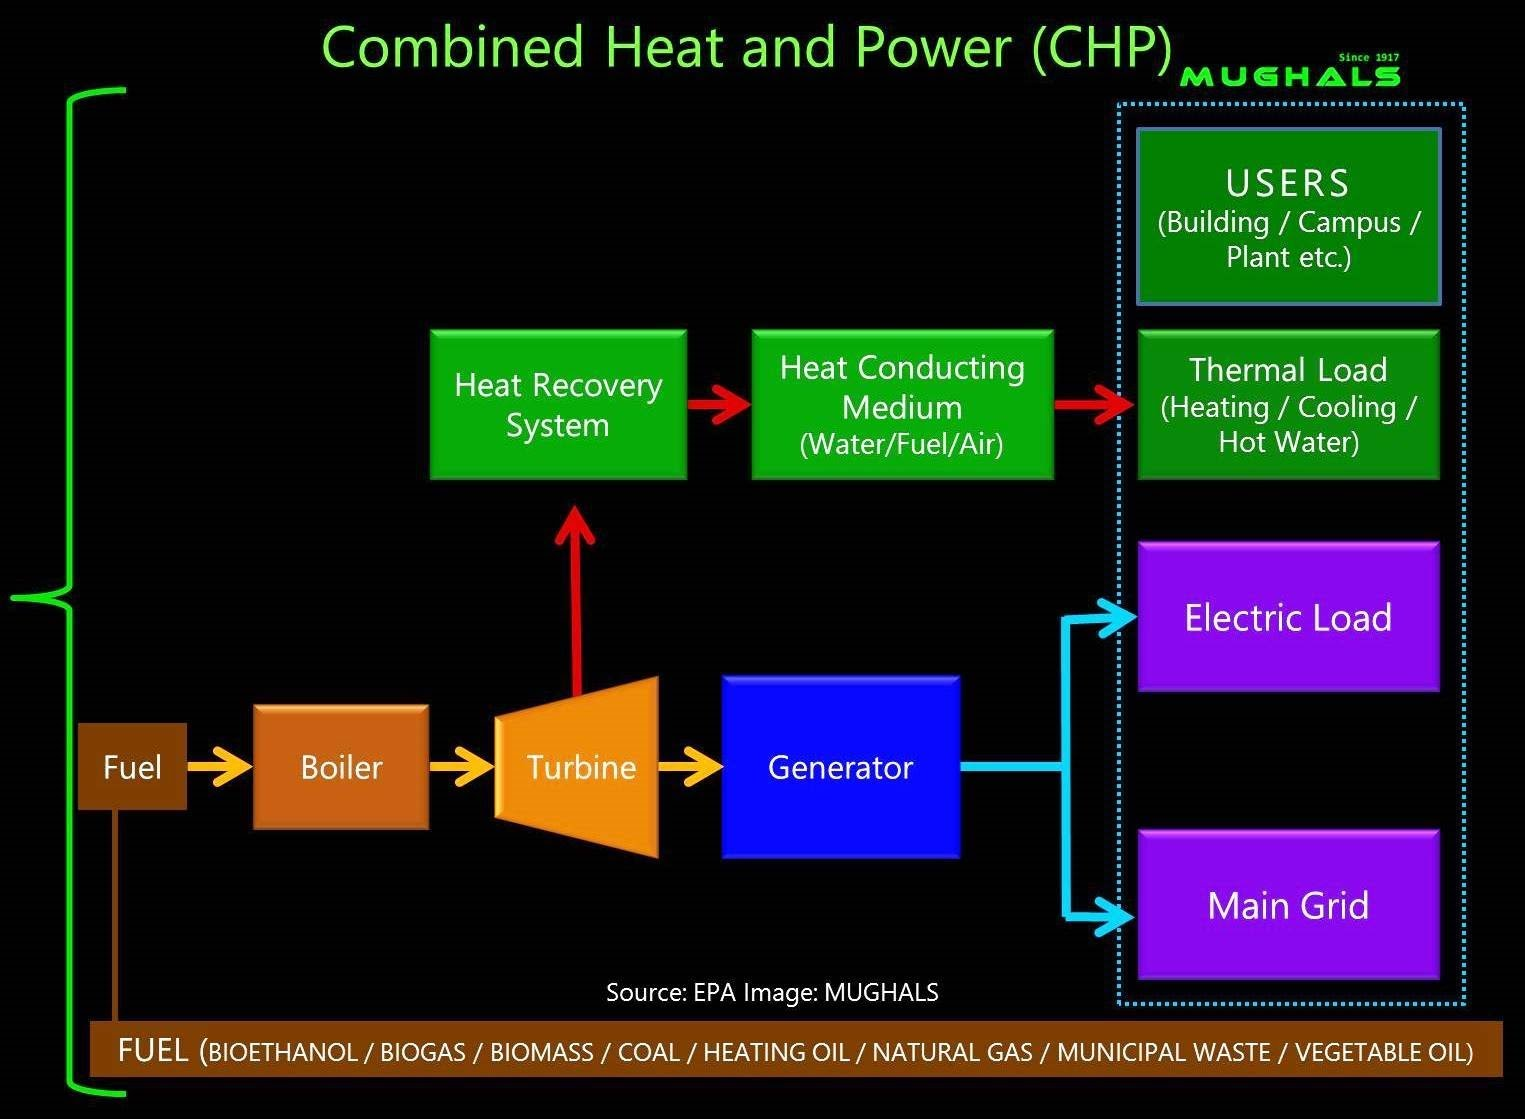 http://www.themughals.net/initiatives-1/chp-plant